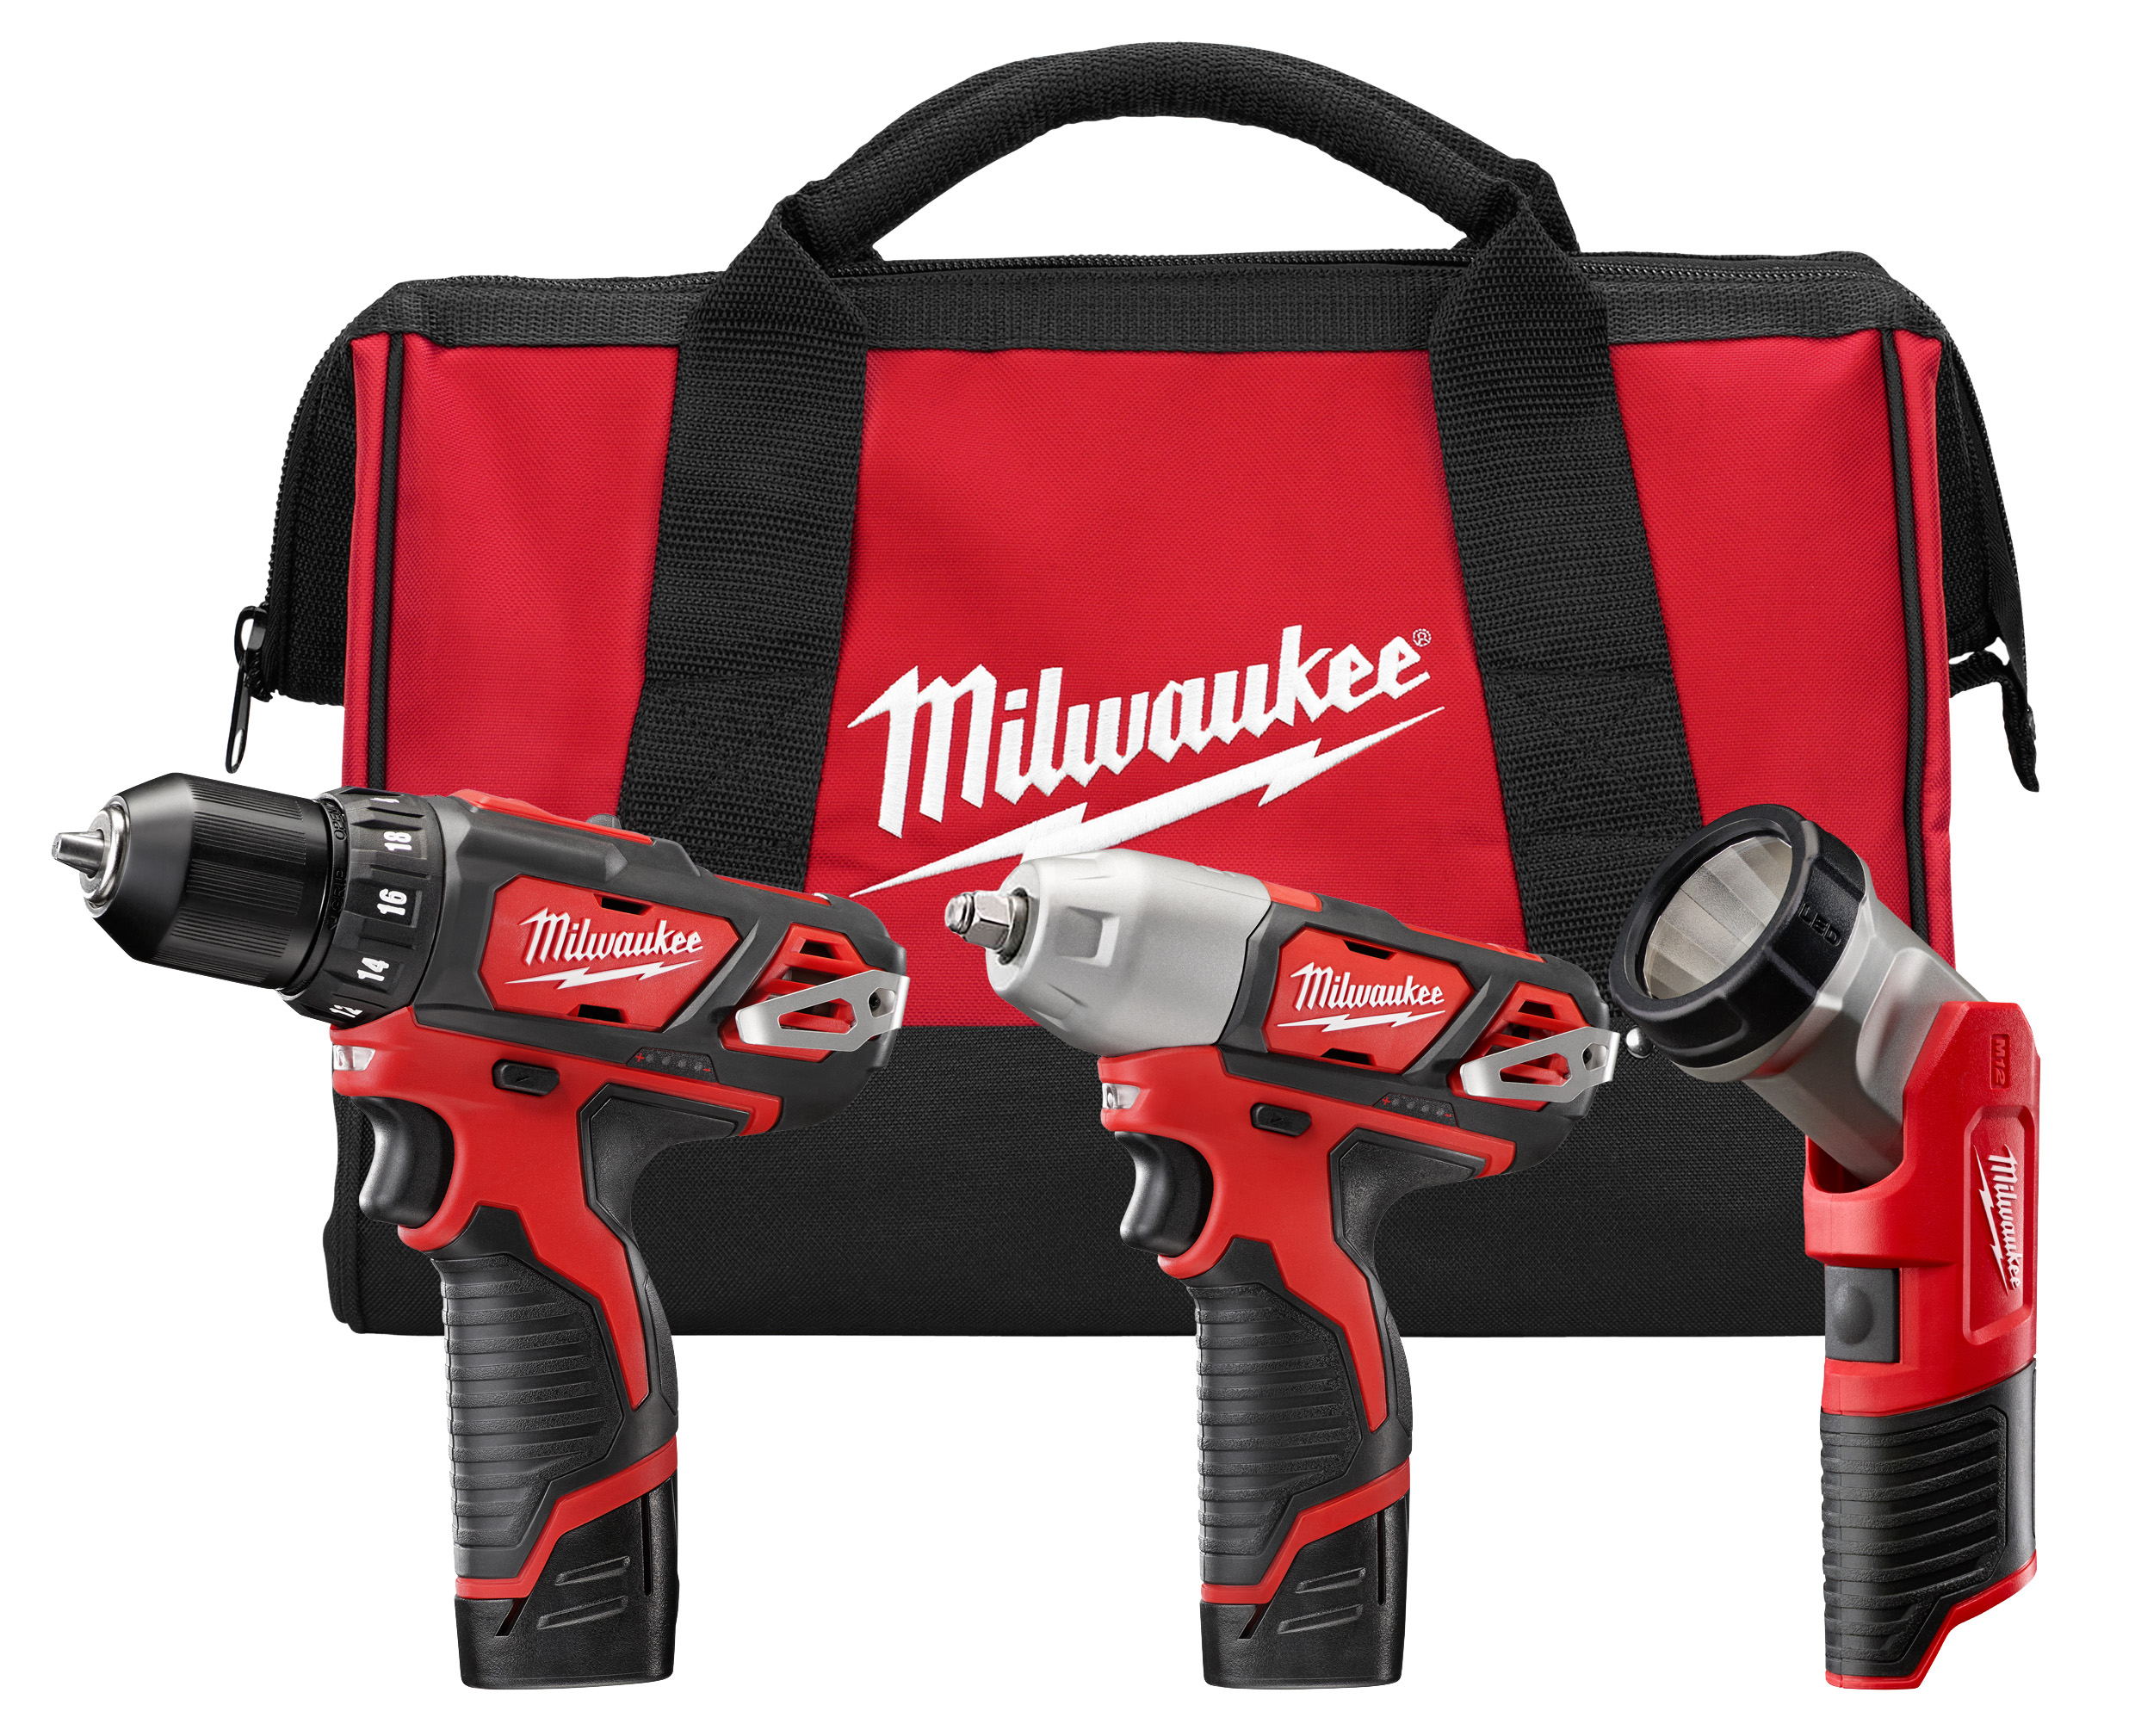 Milwaukee® M12™ 2493-23 3-Tool Cordless Combination Kit, Tools: Drill Driver, Impact Wrench, 12 VDC, 1.5 Ah Lithium-Ion, Keyless Blade